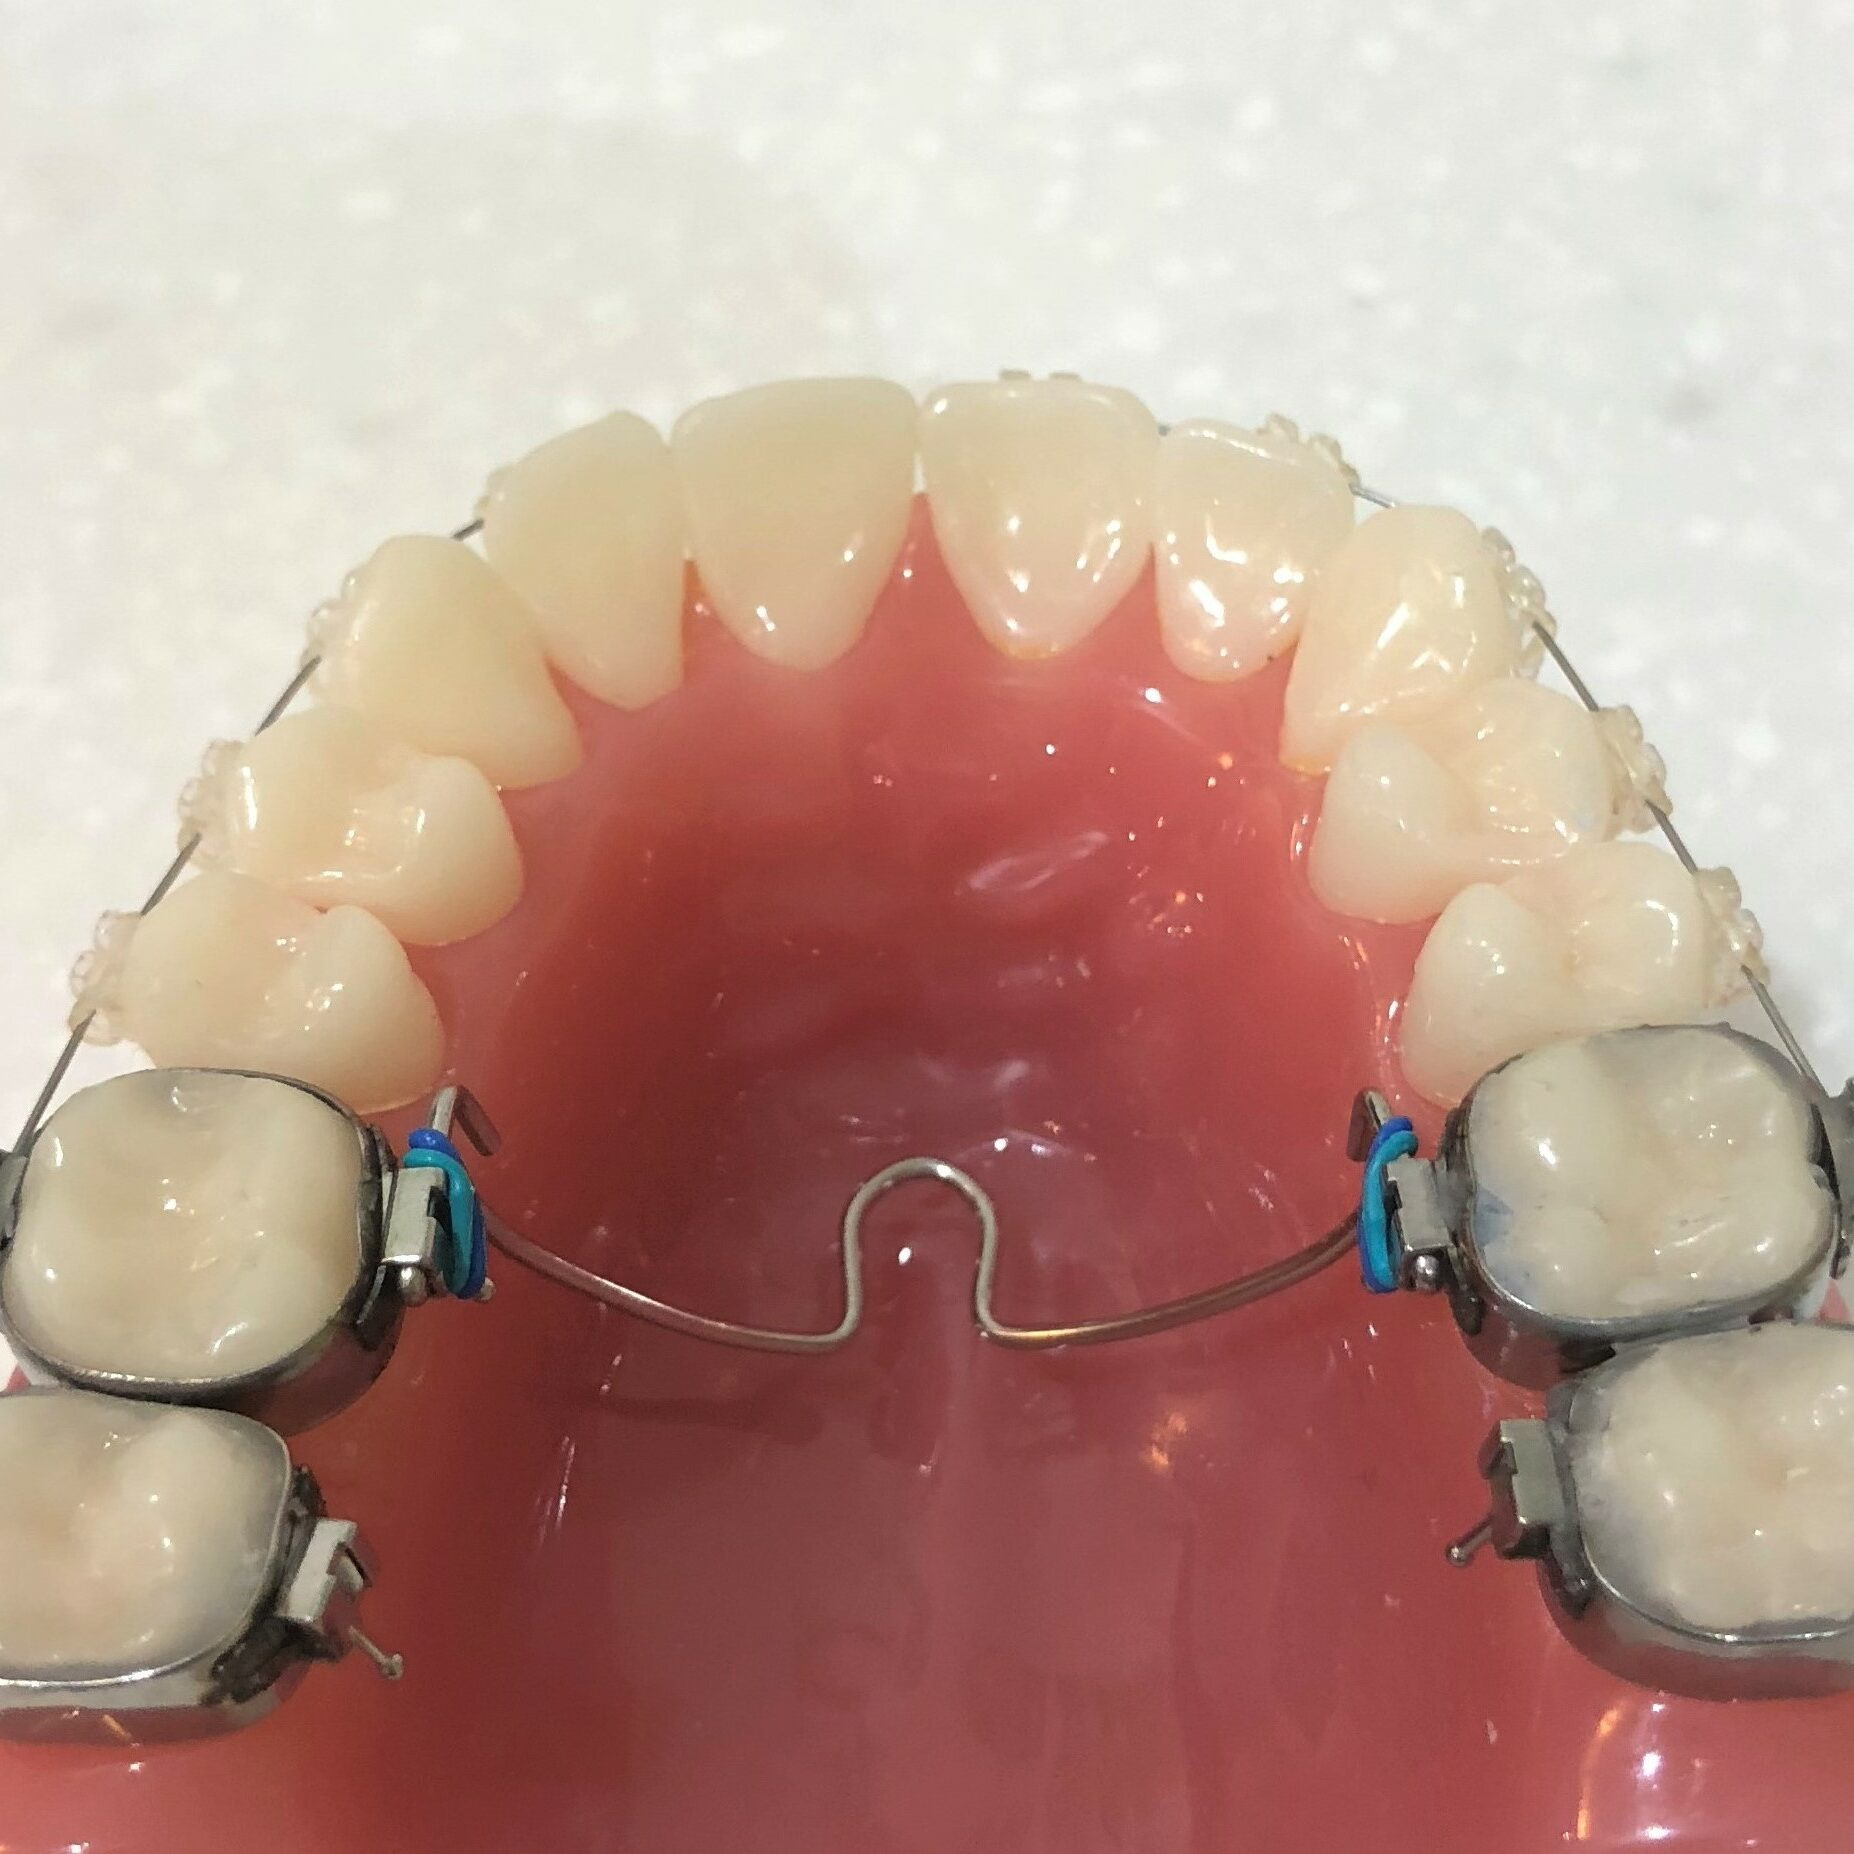 Transpalatal arch and upper braces controls the upper molars for better function between the teeth, jaw joints and jaw muscles. Braces alone often does not achieve good function.